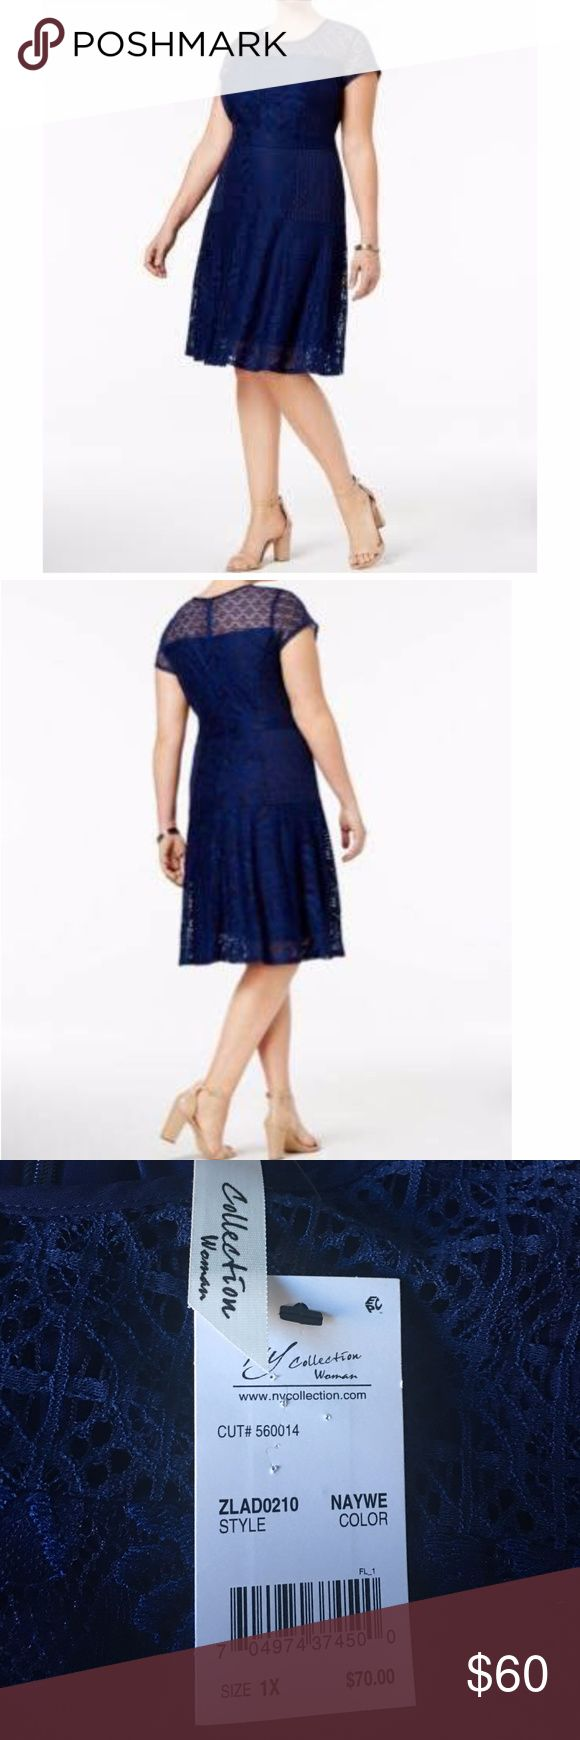 NY Collection Women Dress Plus Size 1x Fit&Flare NY Collection Women Dress Plus Size 1x Fit&Flare Lace Navy Blue Short Sleeve NWT Great for the work place, a night out, and every day wear Original Price: $70 Material: Body: 92% Nylon, 8% Spandex Combo: 70% Cotton, 30% Nylon Lining: 100 % Polyester Cut: #560014 Style:ZLAD0210 Color: Naywe Plus Size: 1X Short Sleeve Above Knee Imported Care: Hand wash cold with like colors, do not bleach, line dry Iron on lowest setting on reverse side, do not…